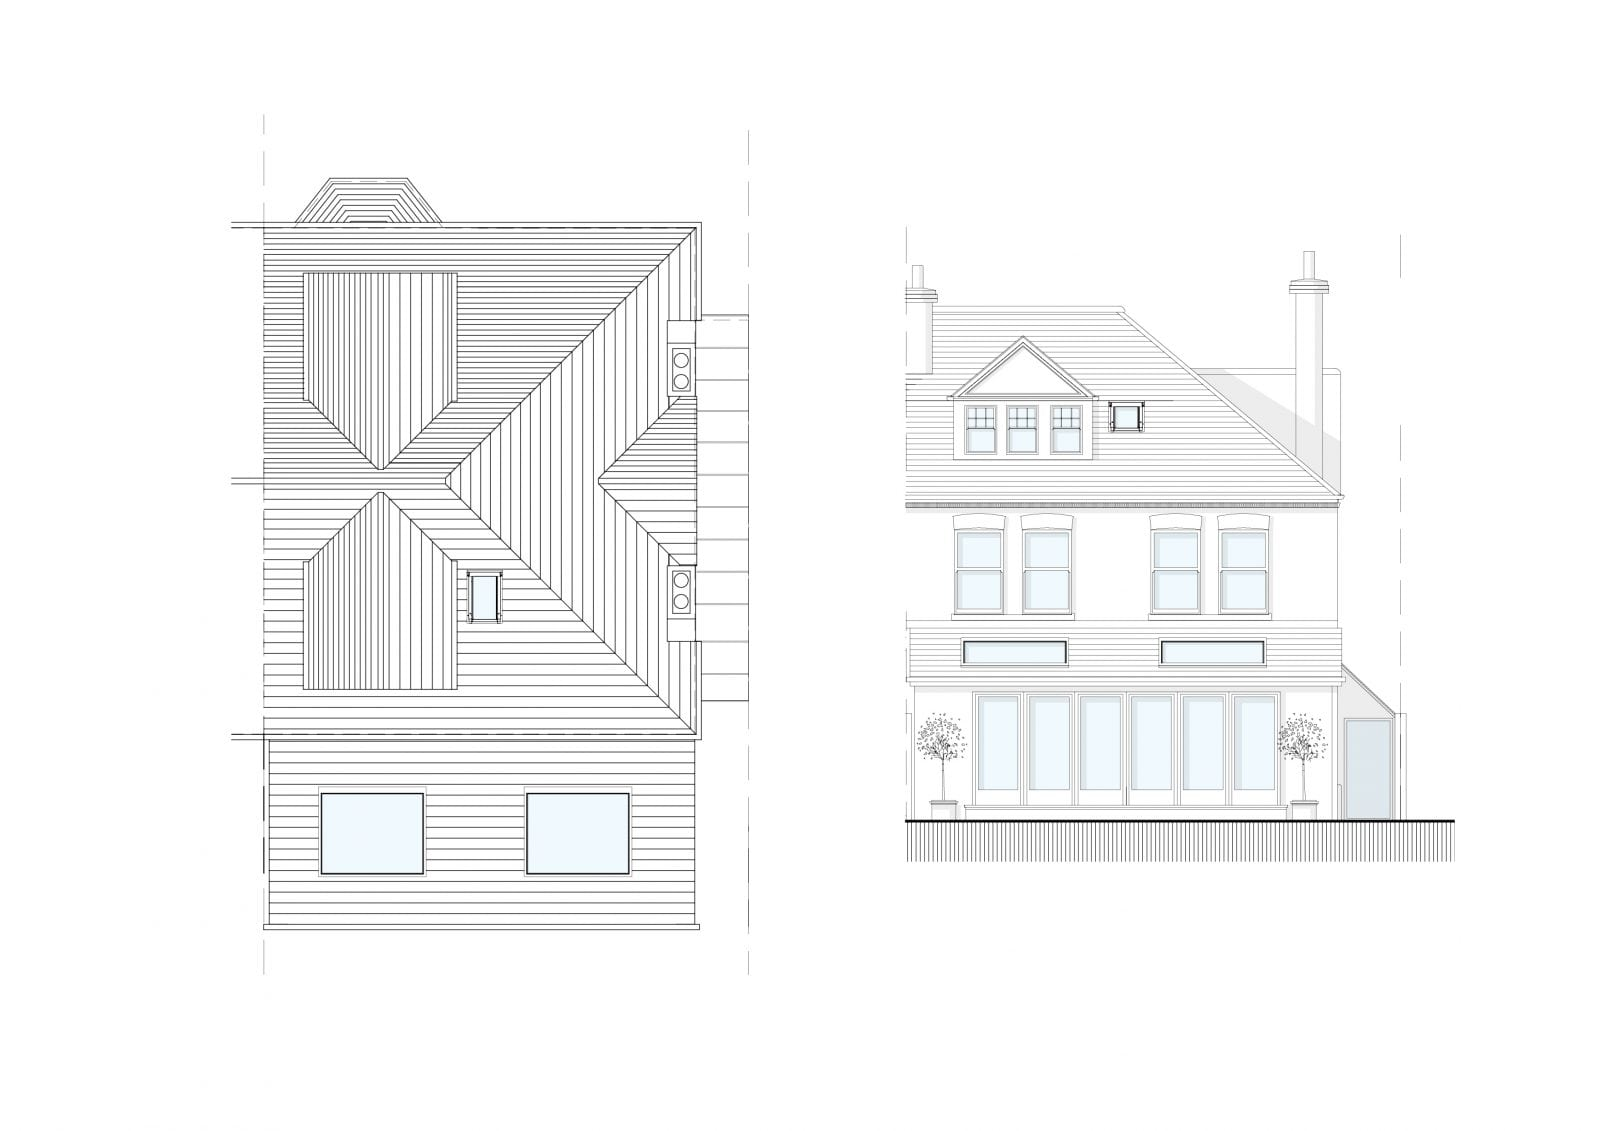 Manfield Rd - Roof Plan & Elevation (Colored)